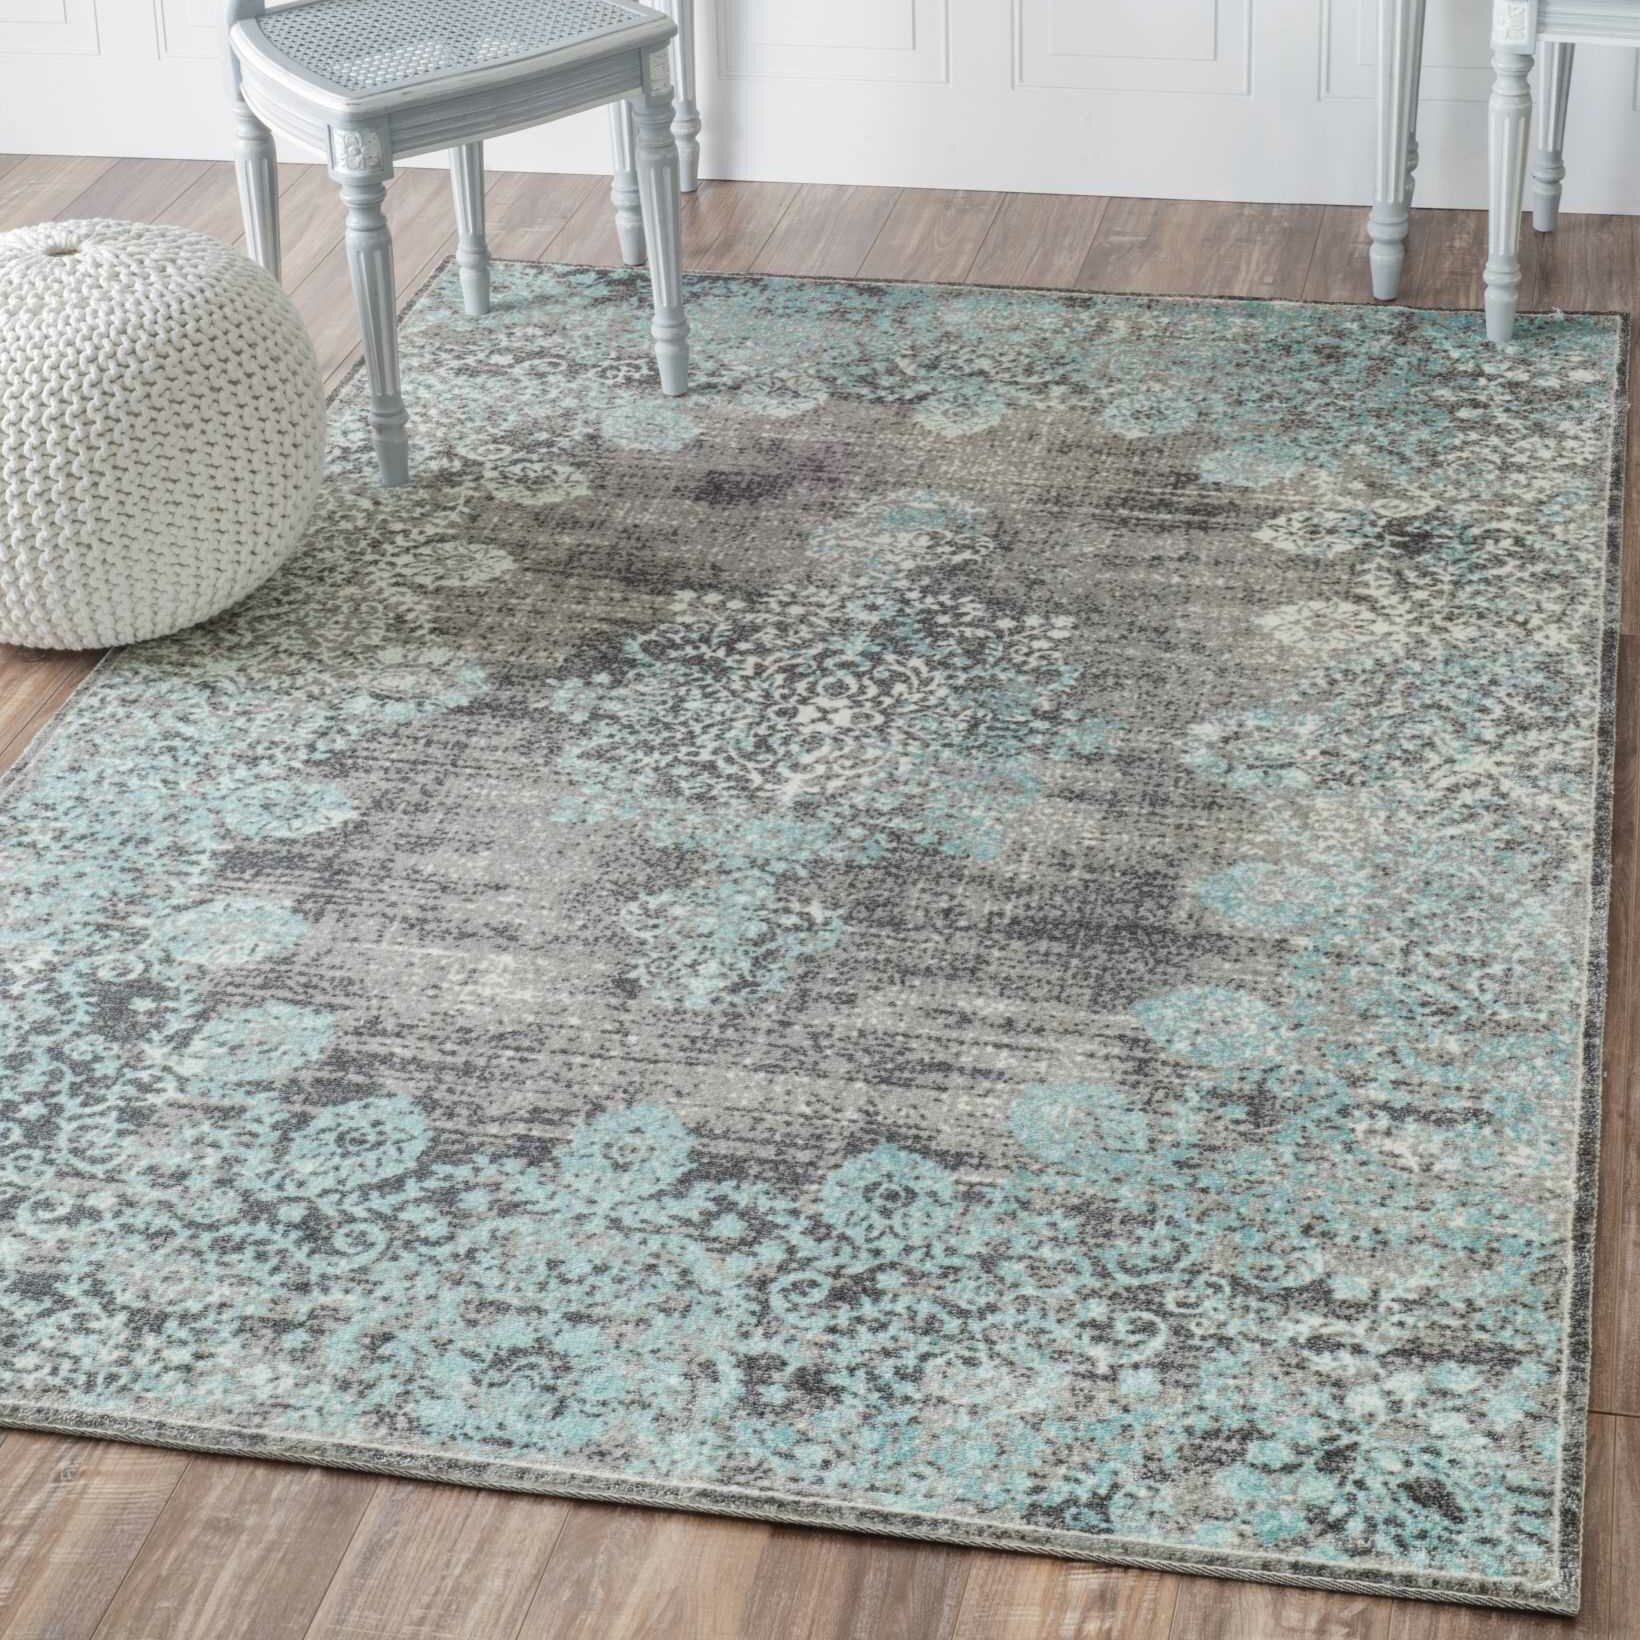 reviews woven hand area birch blue rugs windows rug pdp lane fogarty